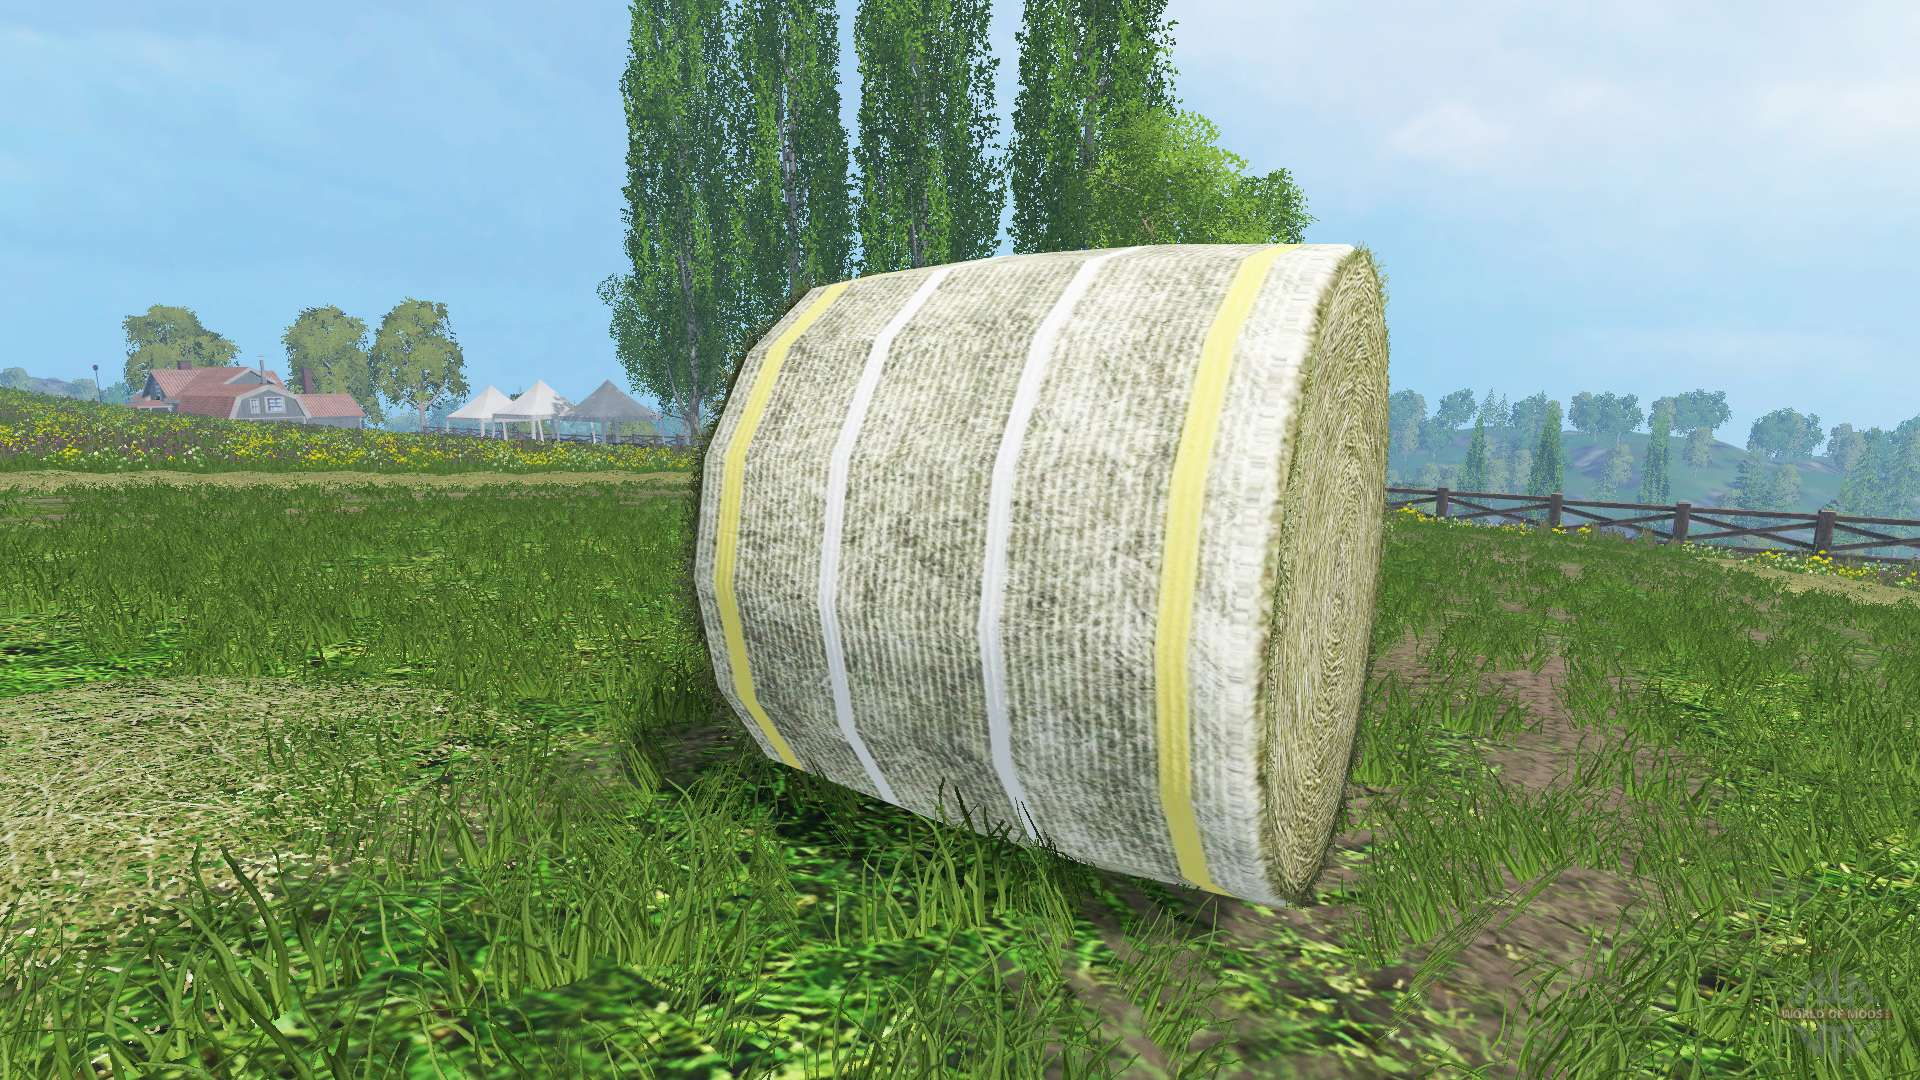 Download Farming Simulator 2015 mods for free